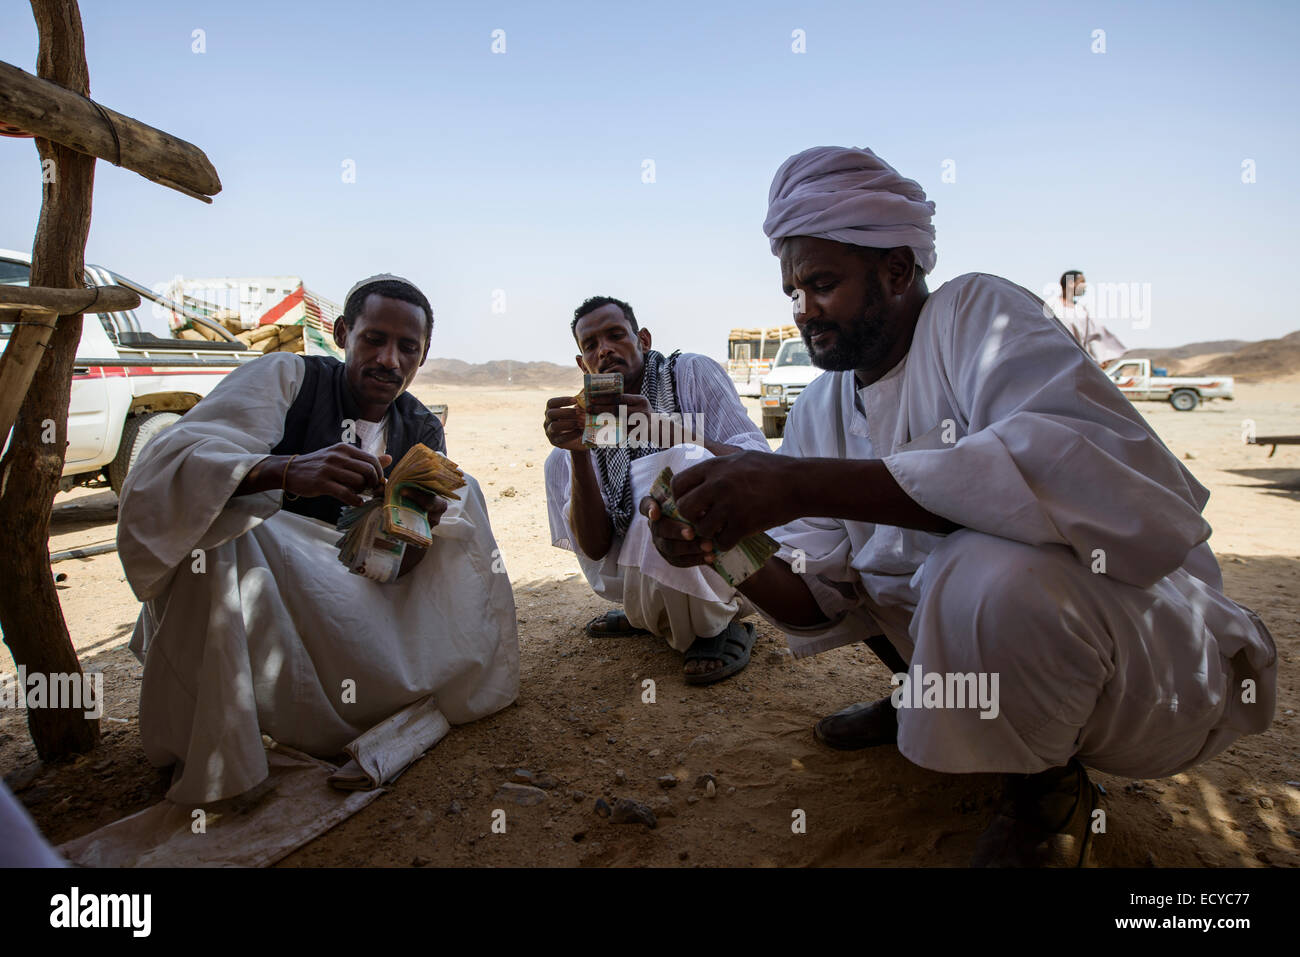 Sudanese men counting money from selling faba beans, Sudan - Stock Image